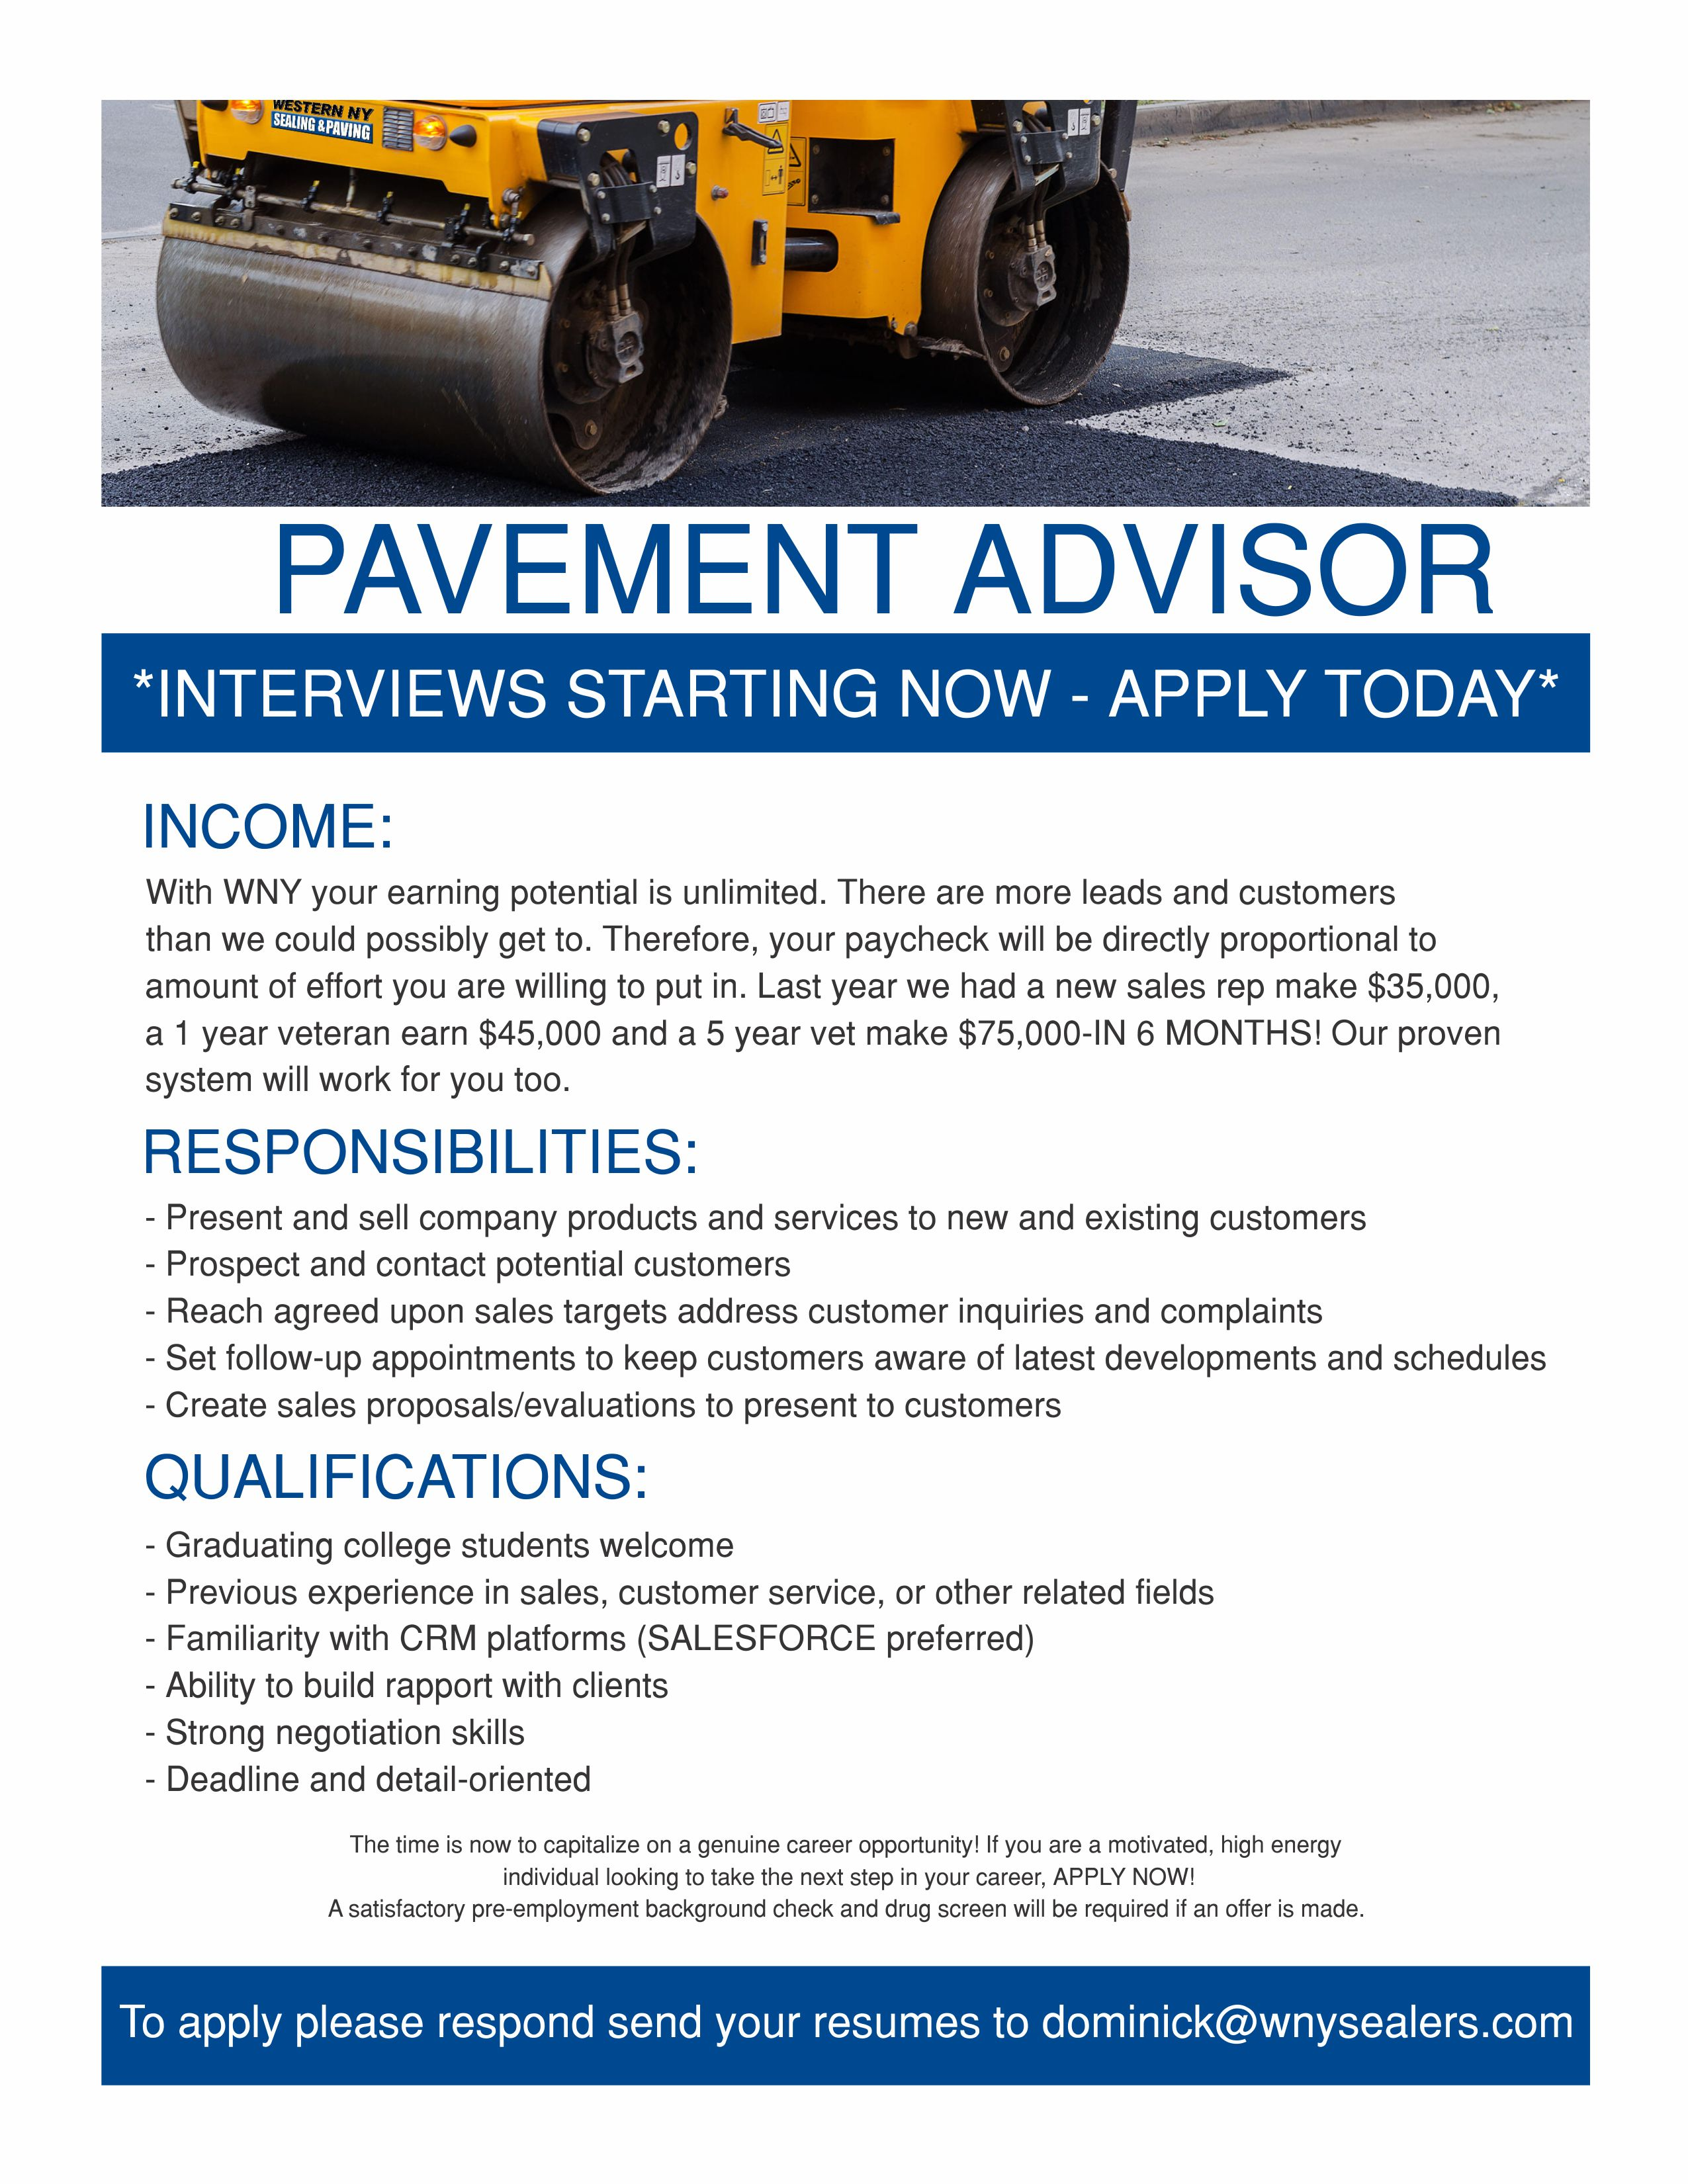 Careers | Job Opportunity | Western NY Sealing & Paving